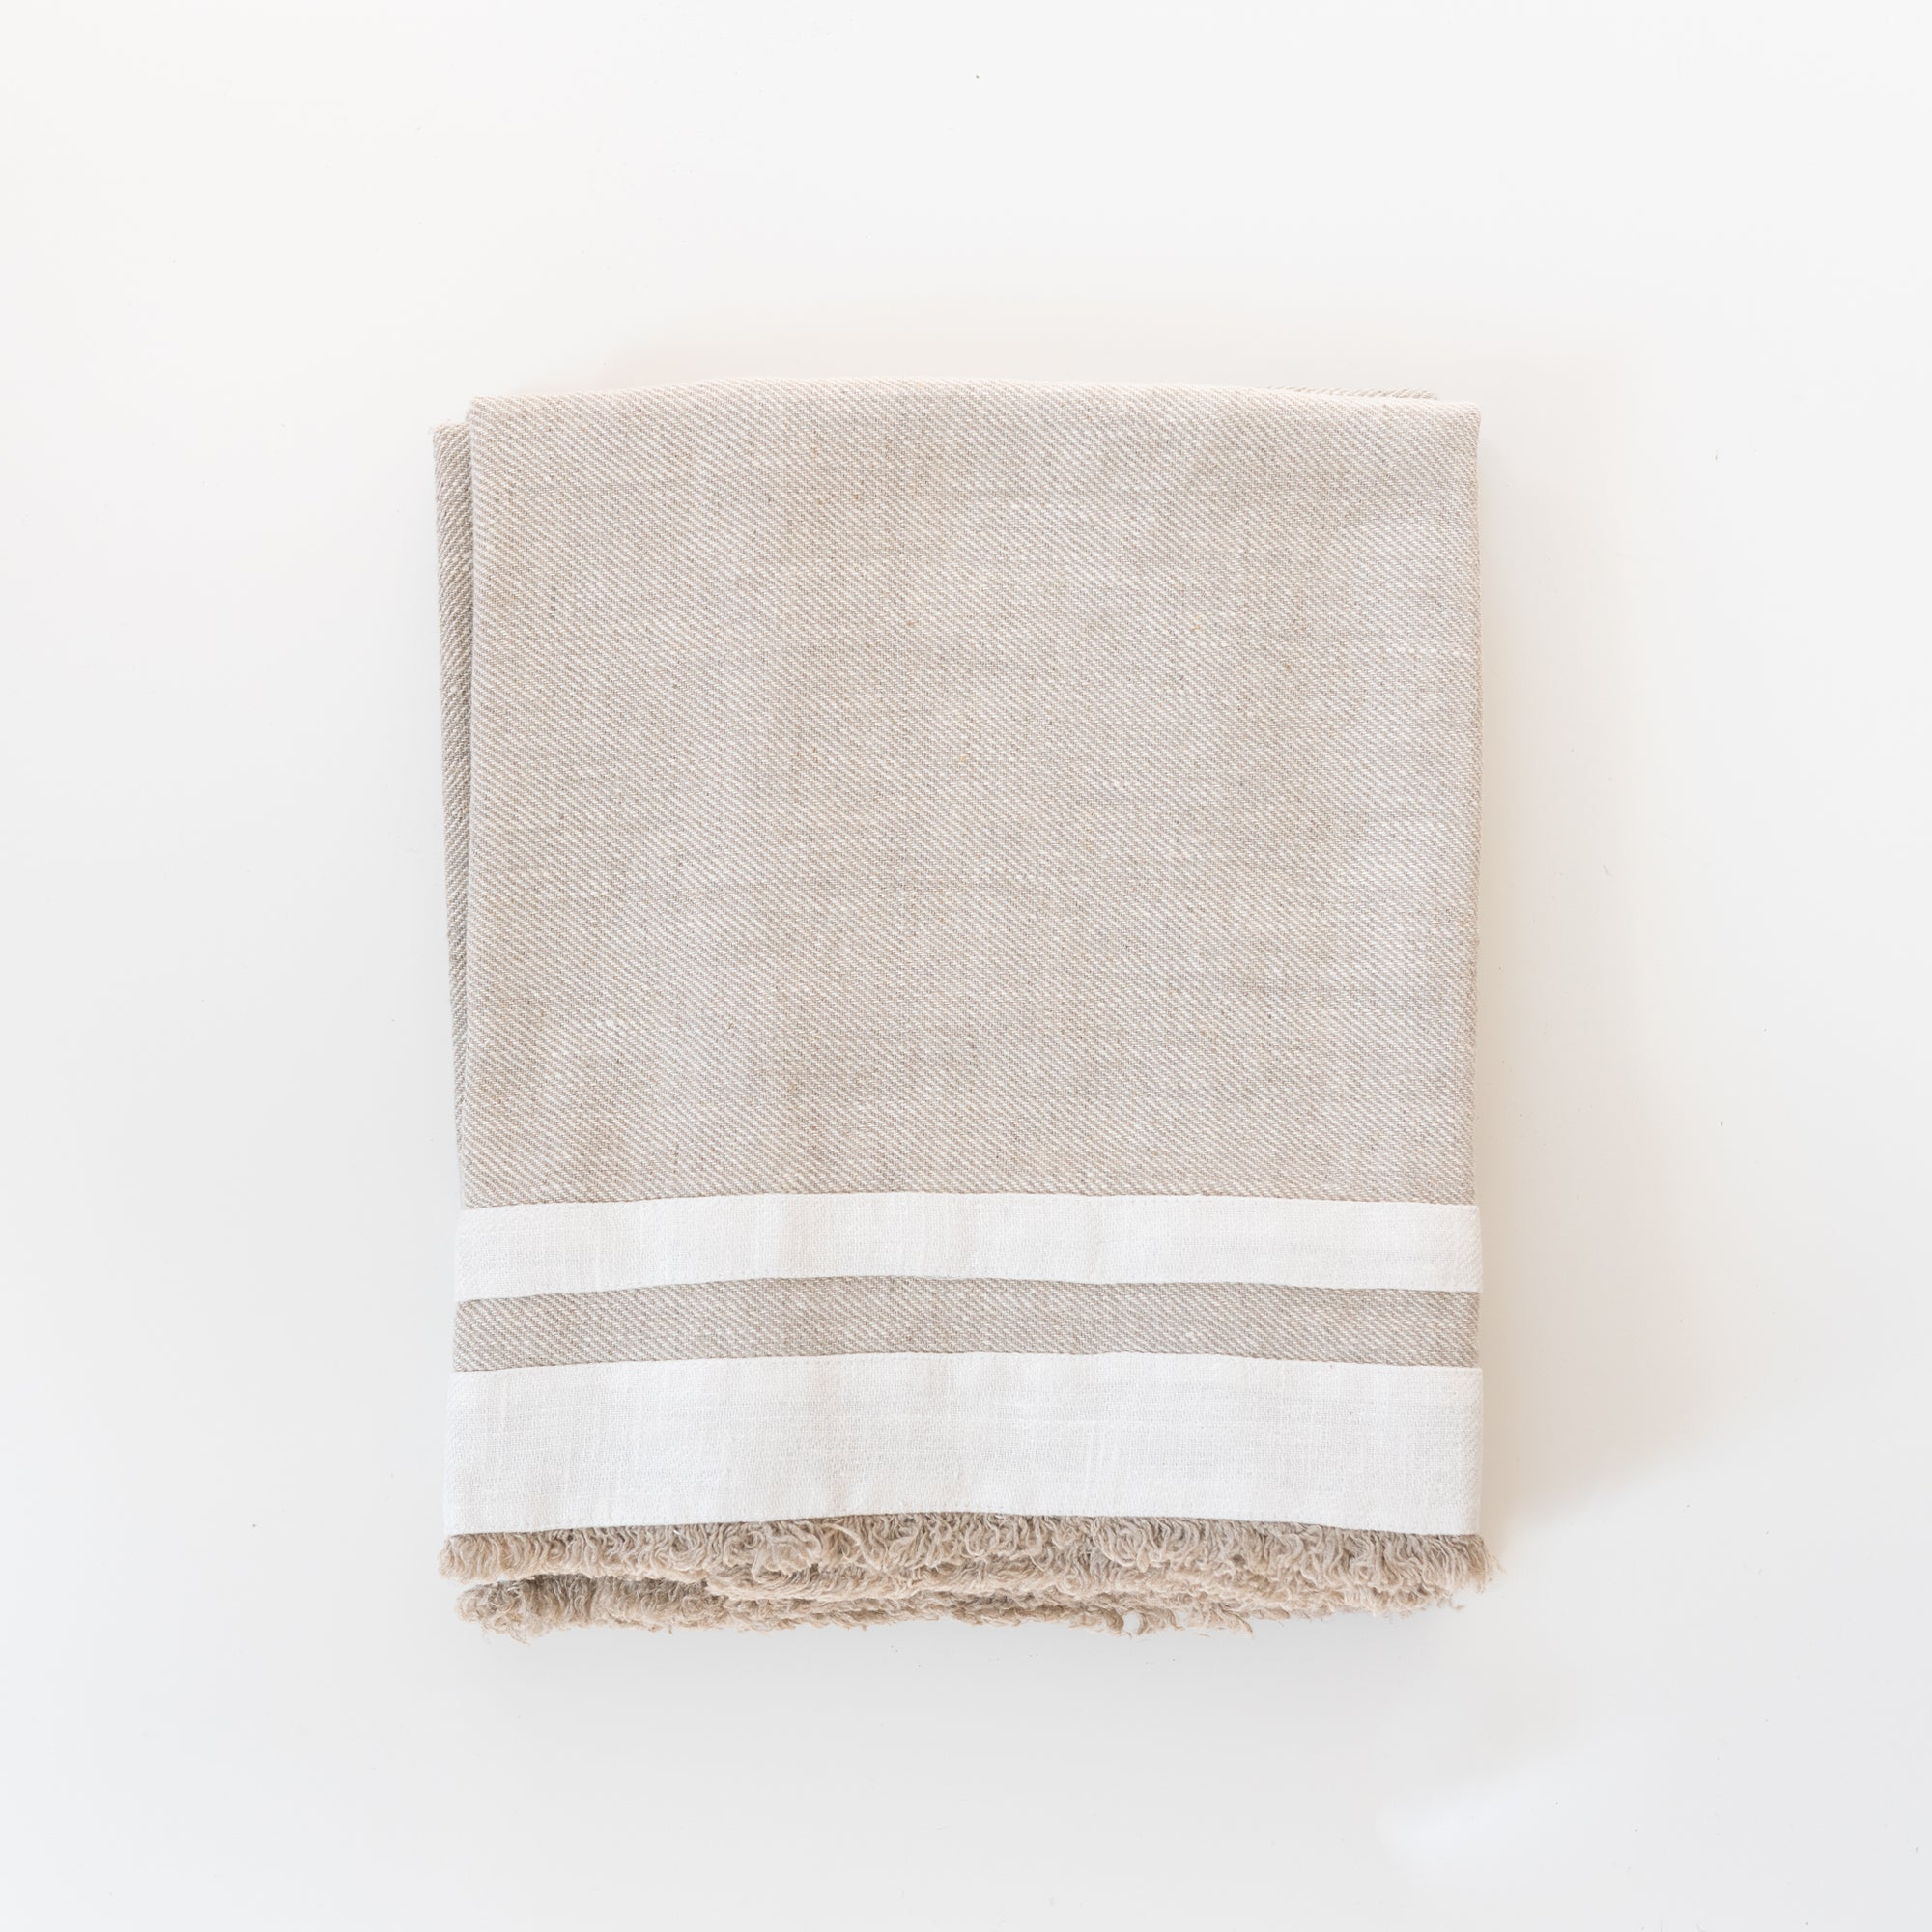 Oatmeal Linen Bath Towel